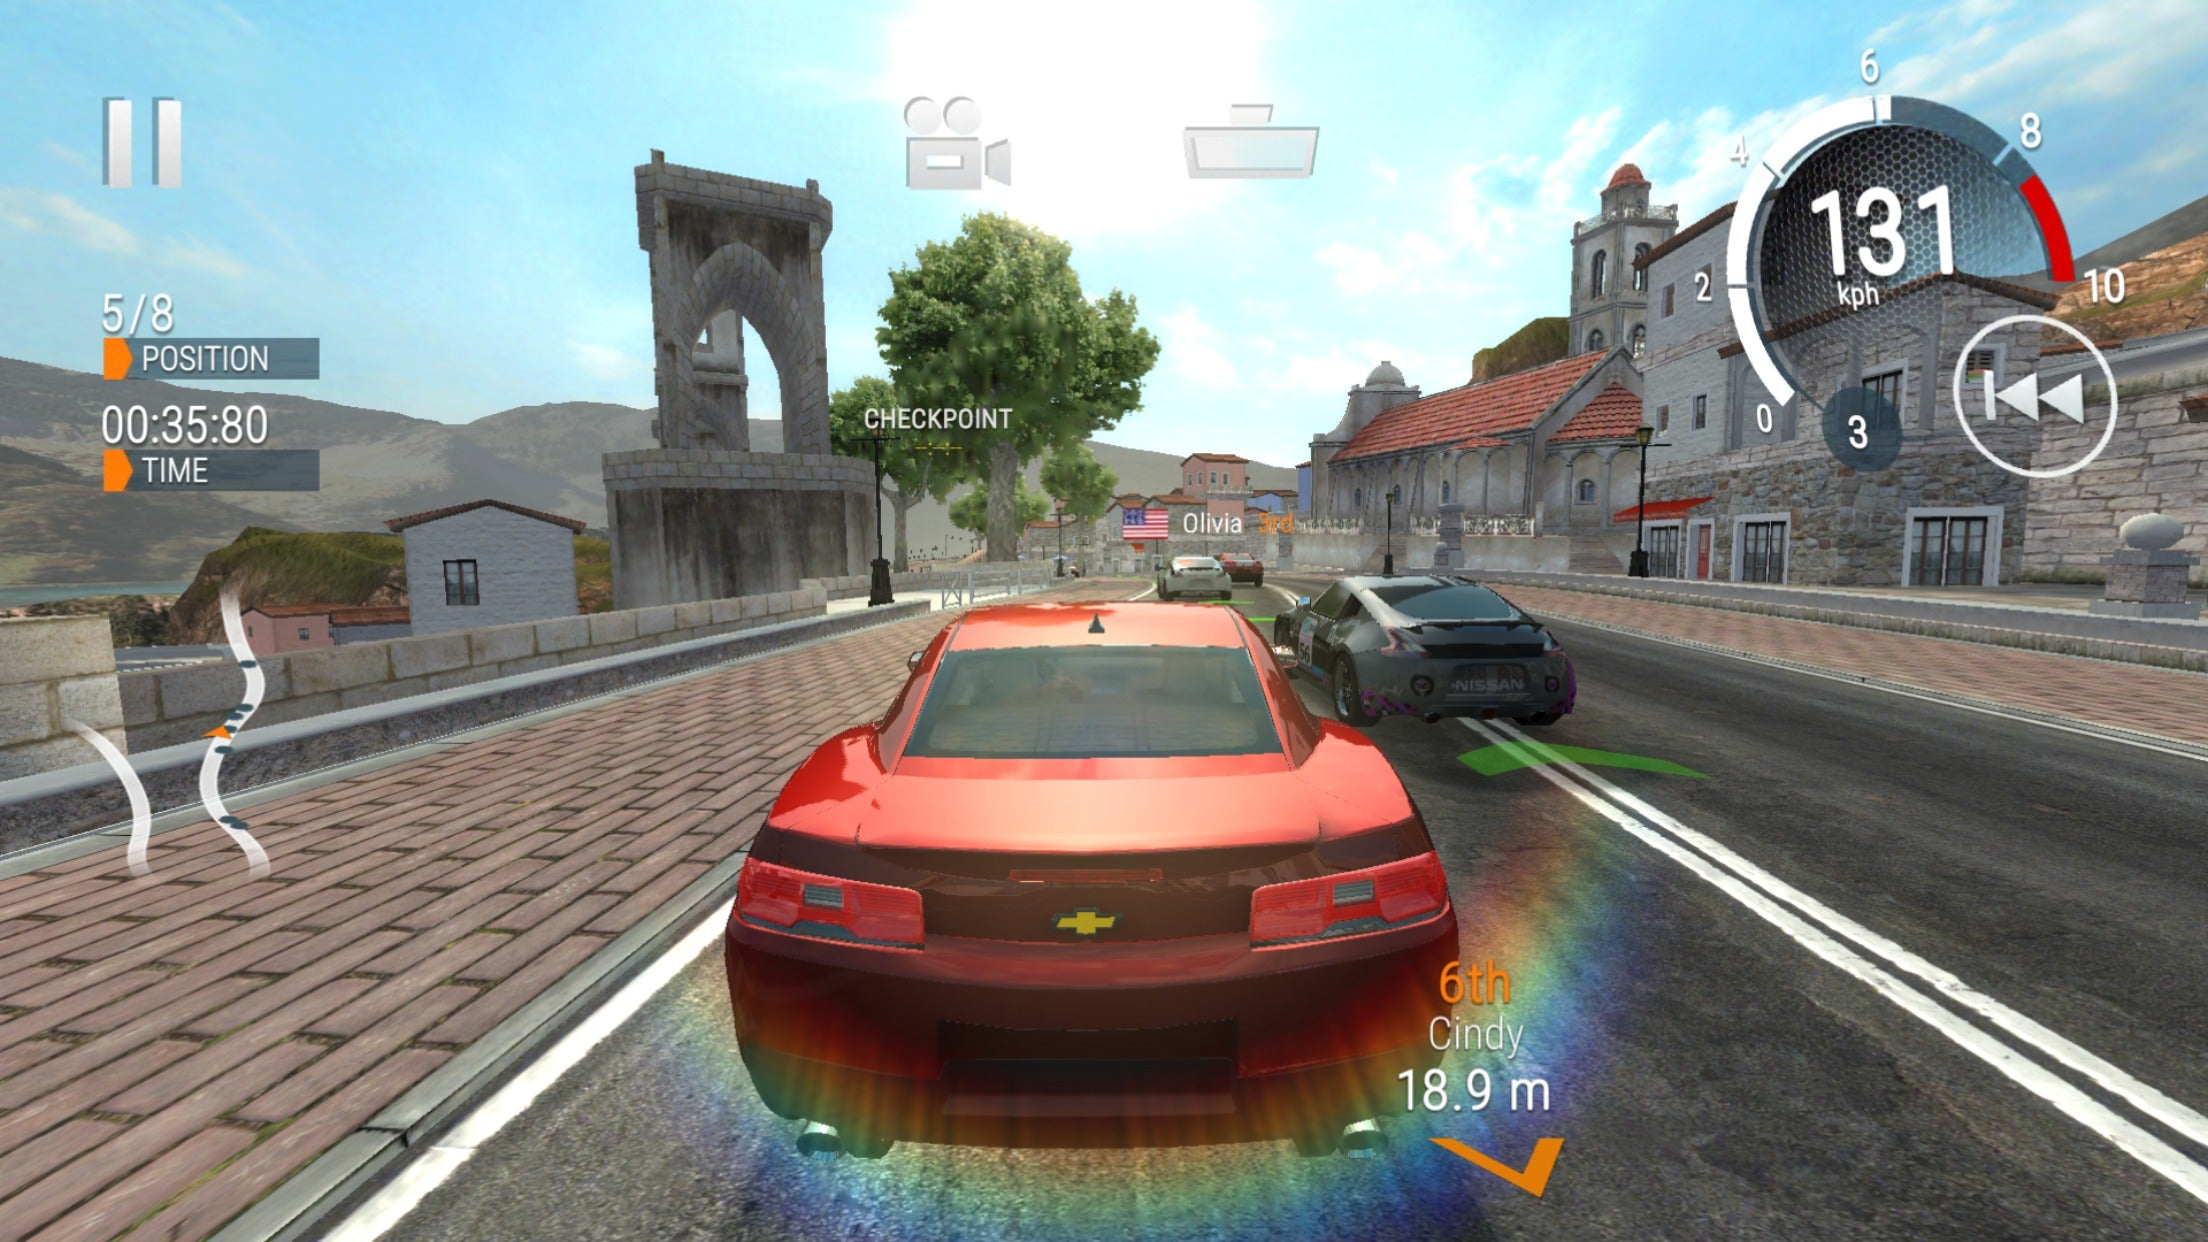 Best iOS Racing Games 2020 - iPhone and iPad Games - Best ...